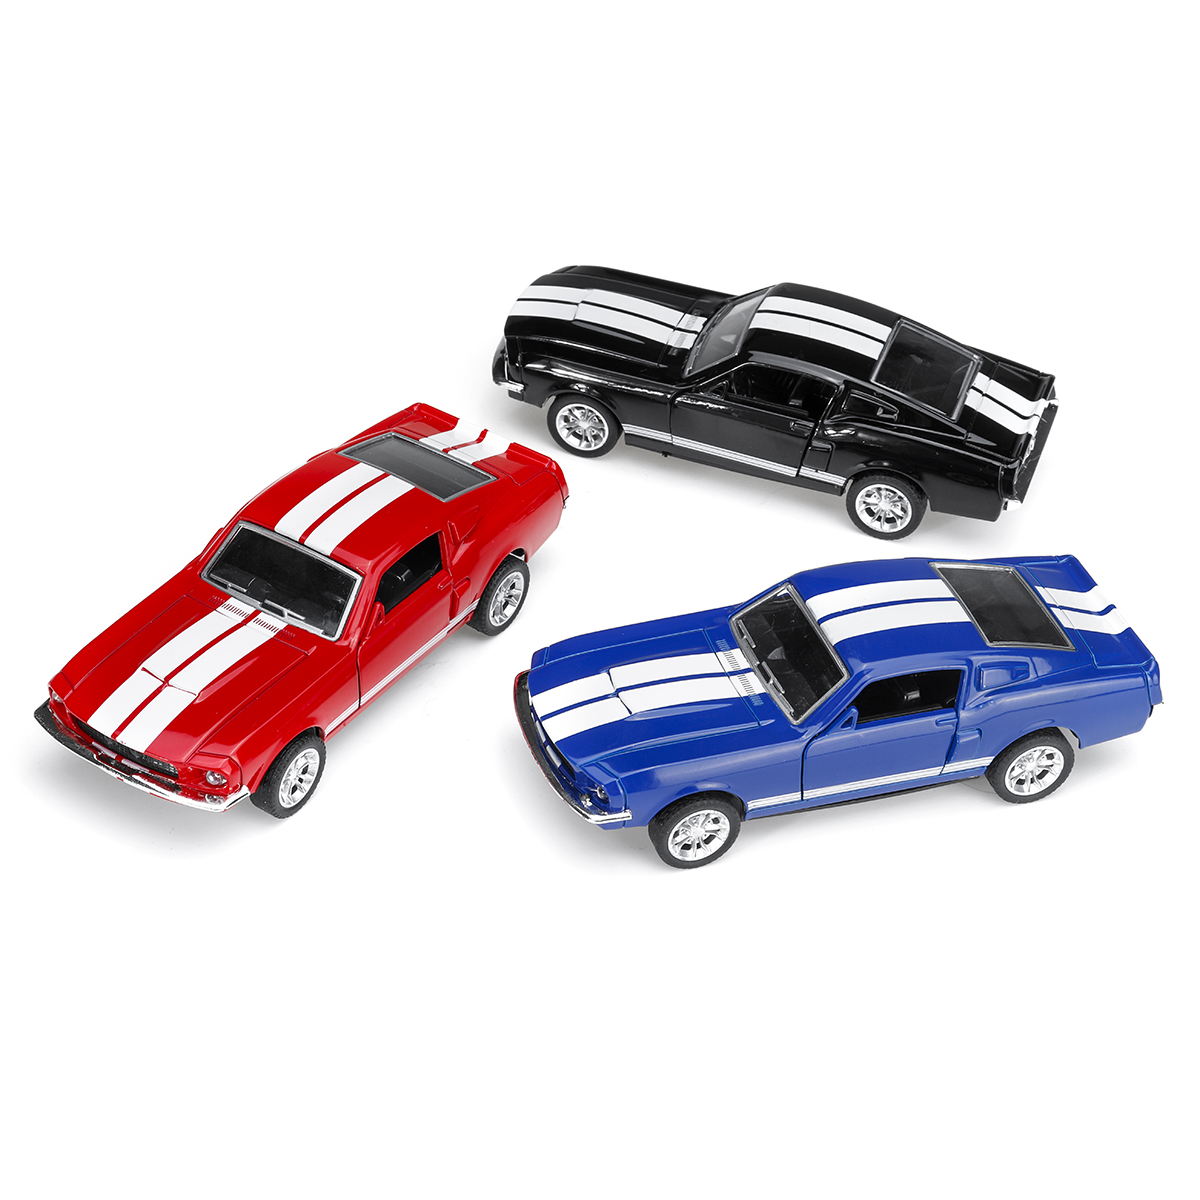 1:32 Alloy Fords Mustang GT 1967 GT500 Return Diecast Car Model Toy for Children Gift - Photo: 3